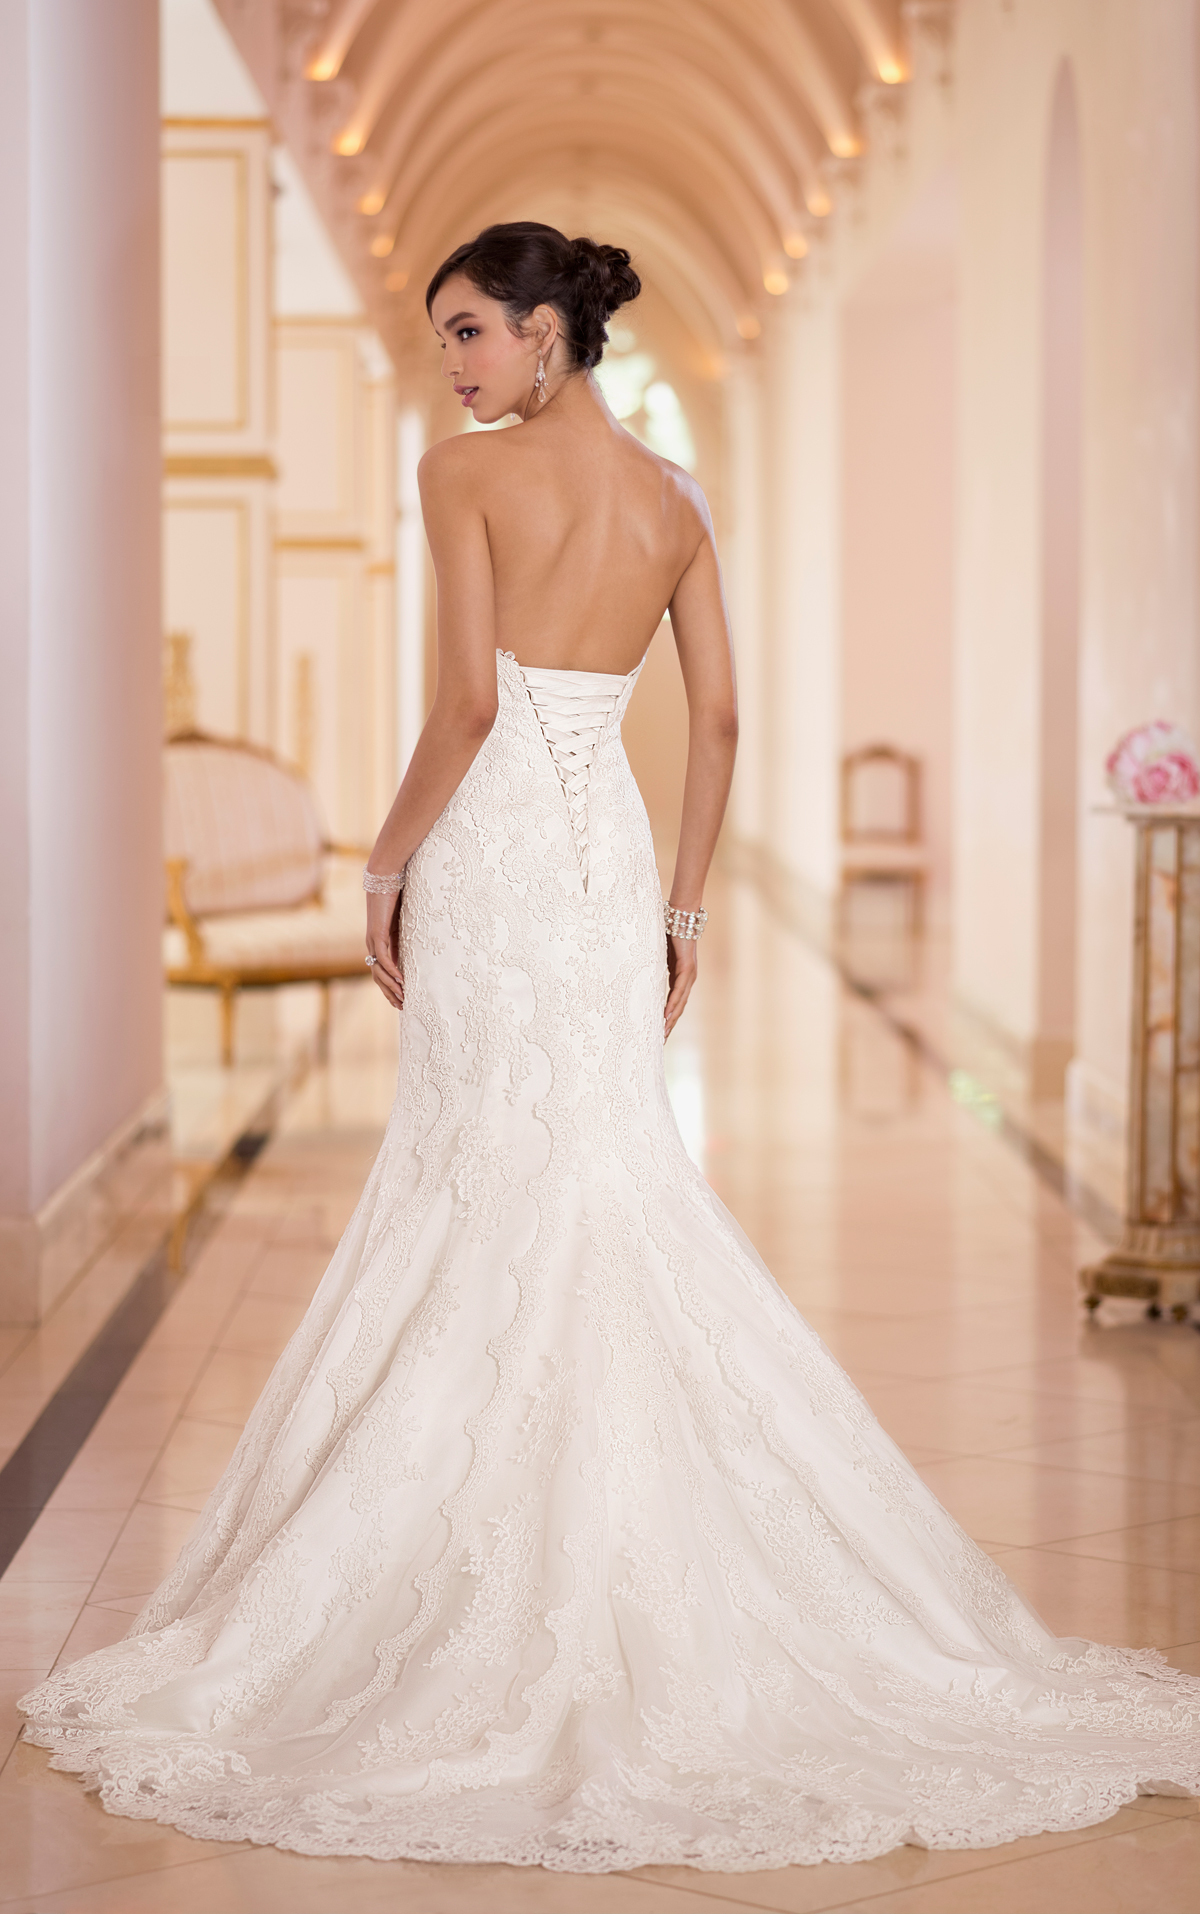 Glamorous stella york wedding dresses 2014 collection for Pictures of sexy wedding dresses